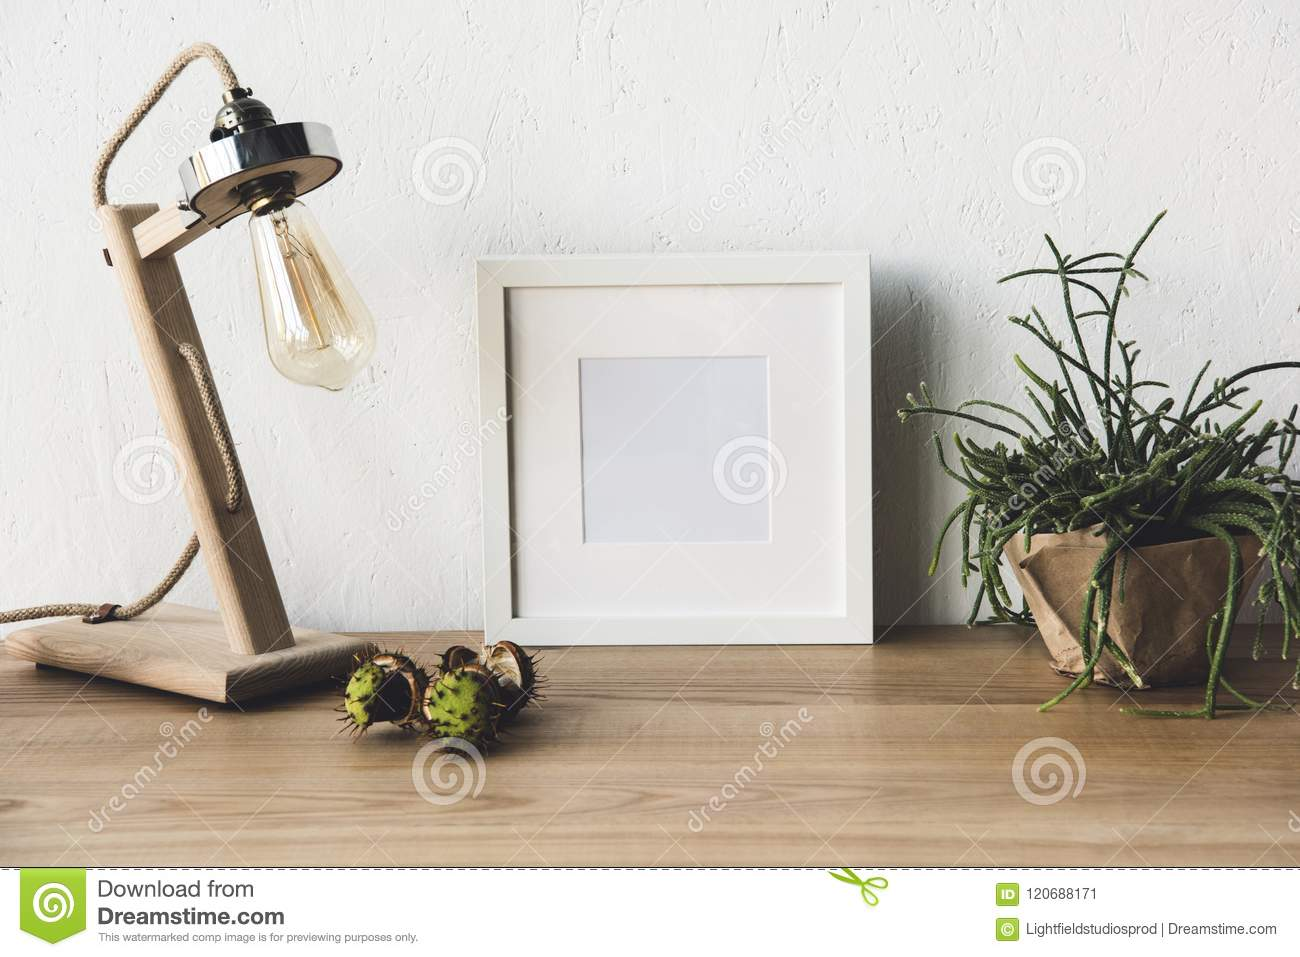 close up view of empty photo frame, table lamp and plant in flowerpot